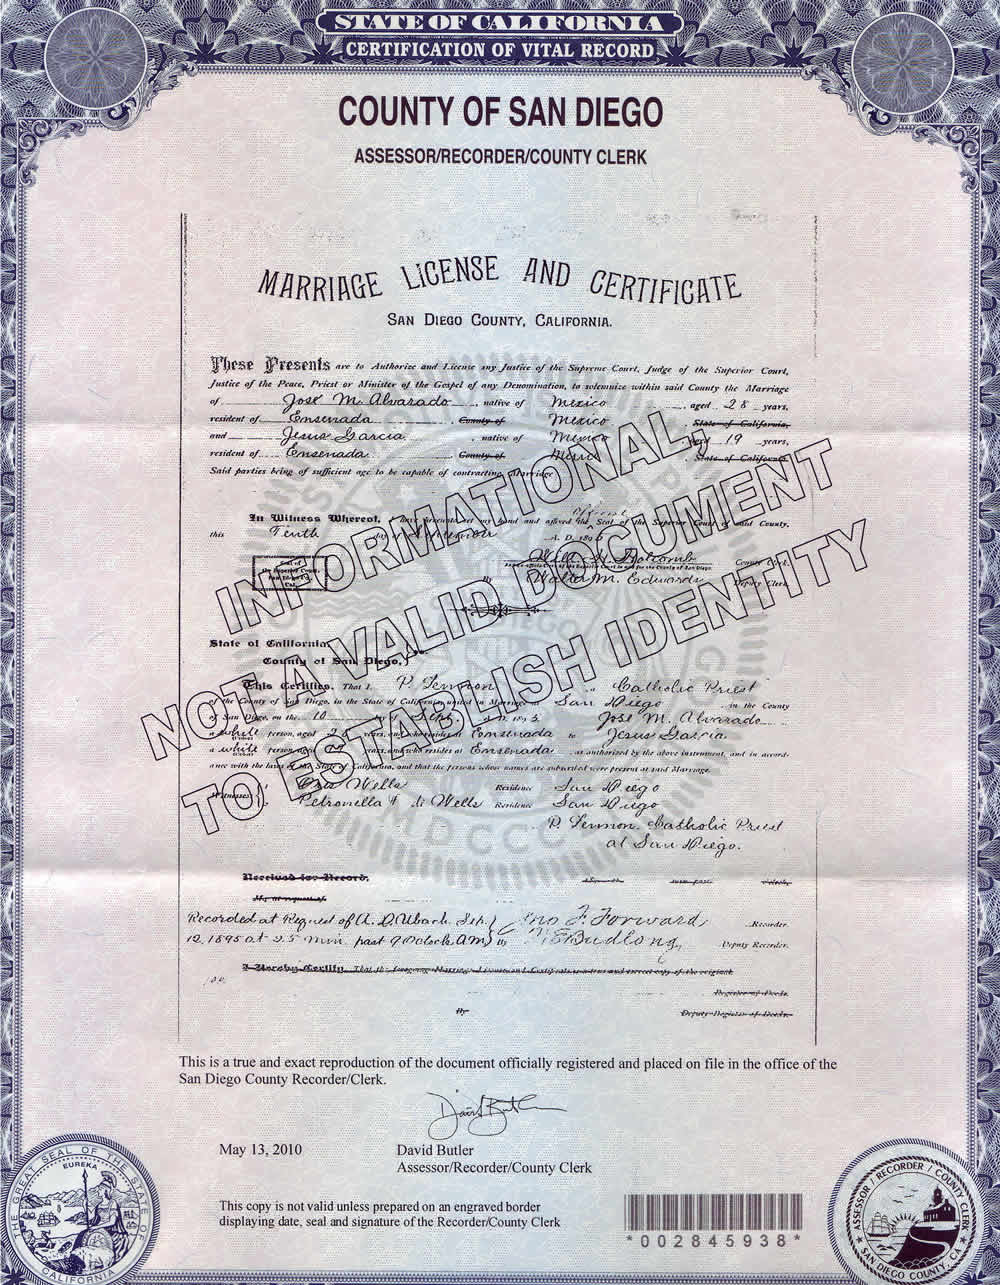 marriage certificate jose mara alvarado and jesus garcia 1895